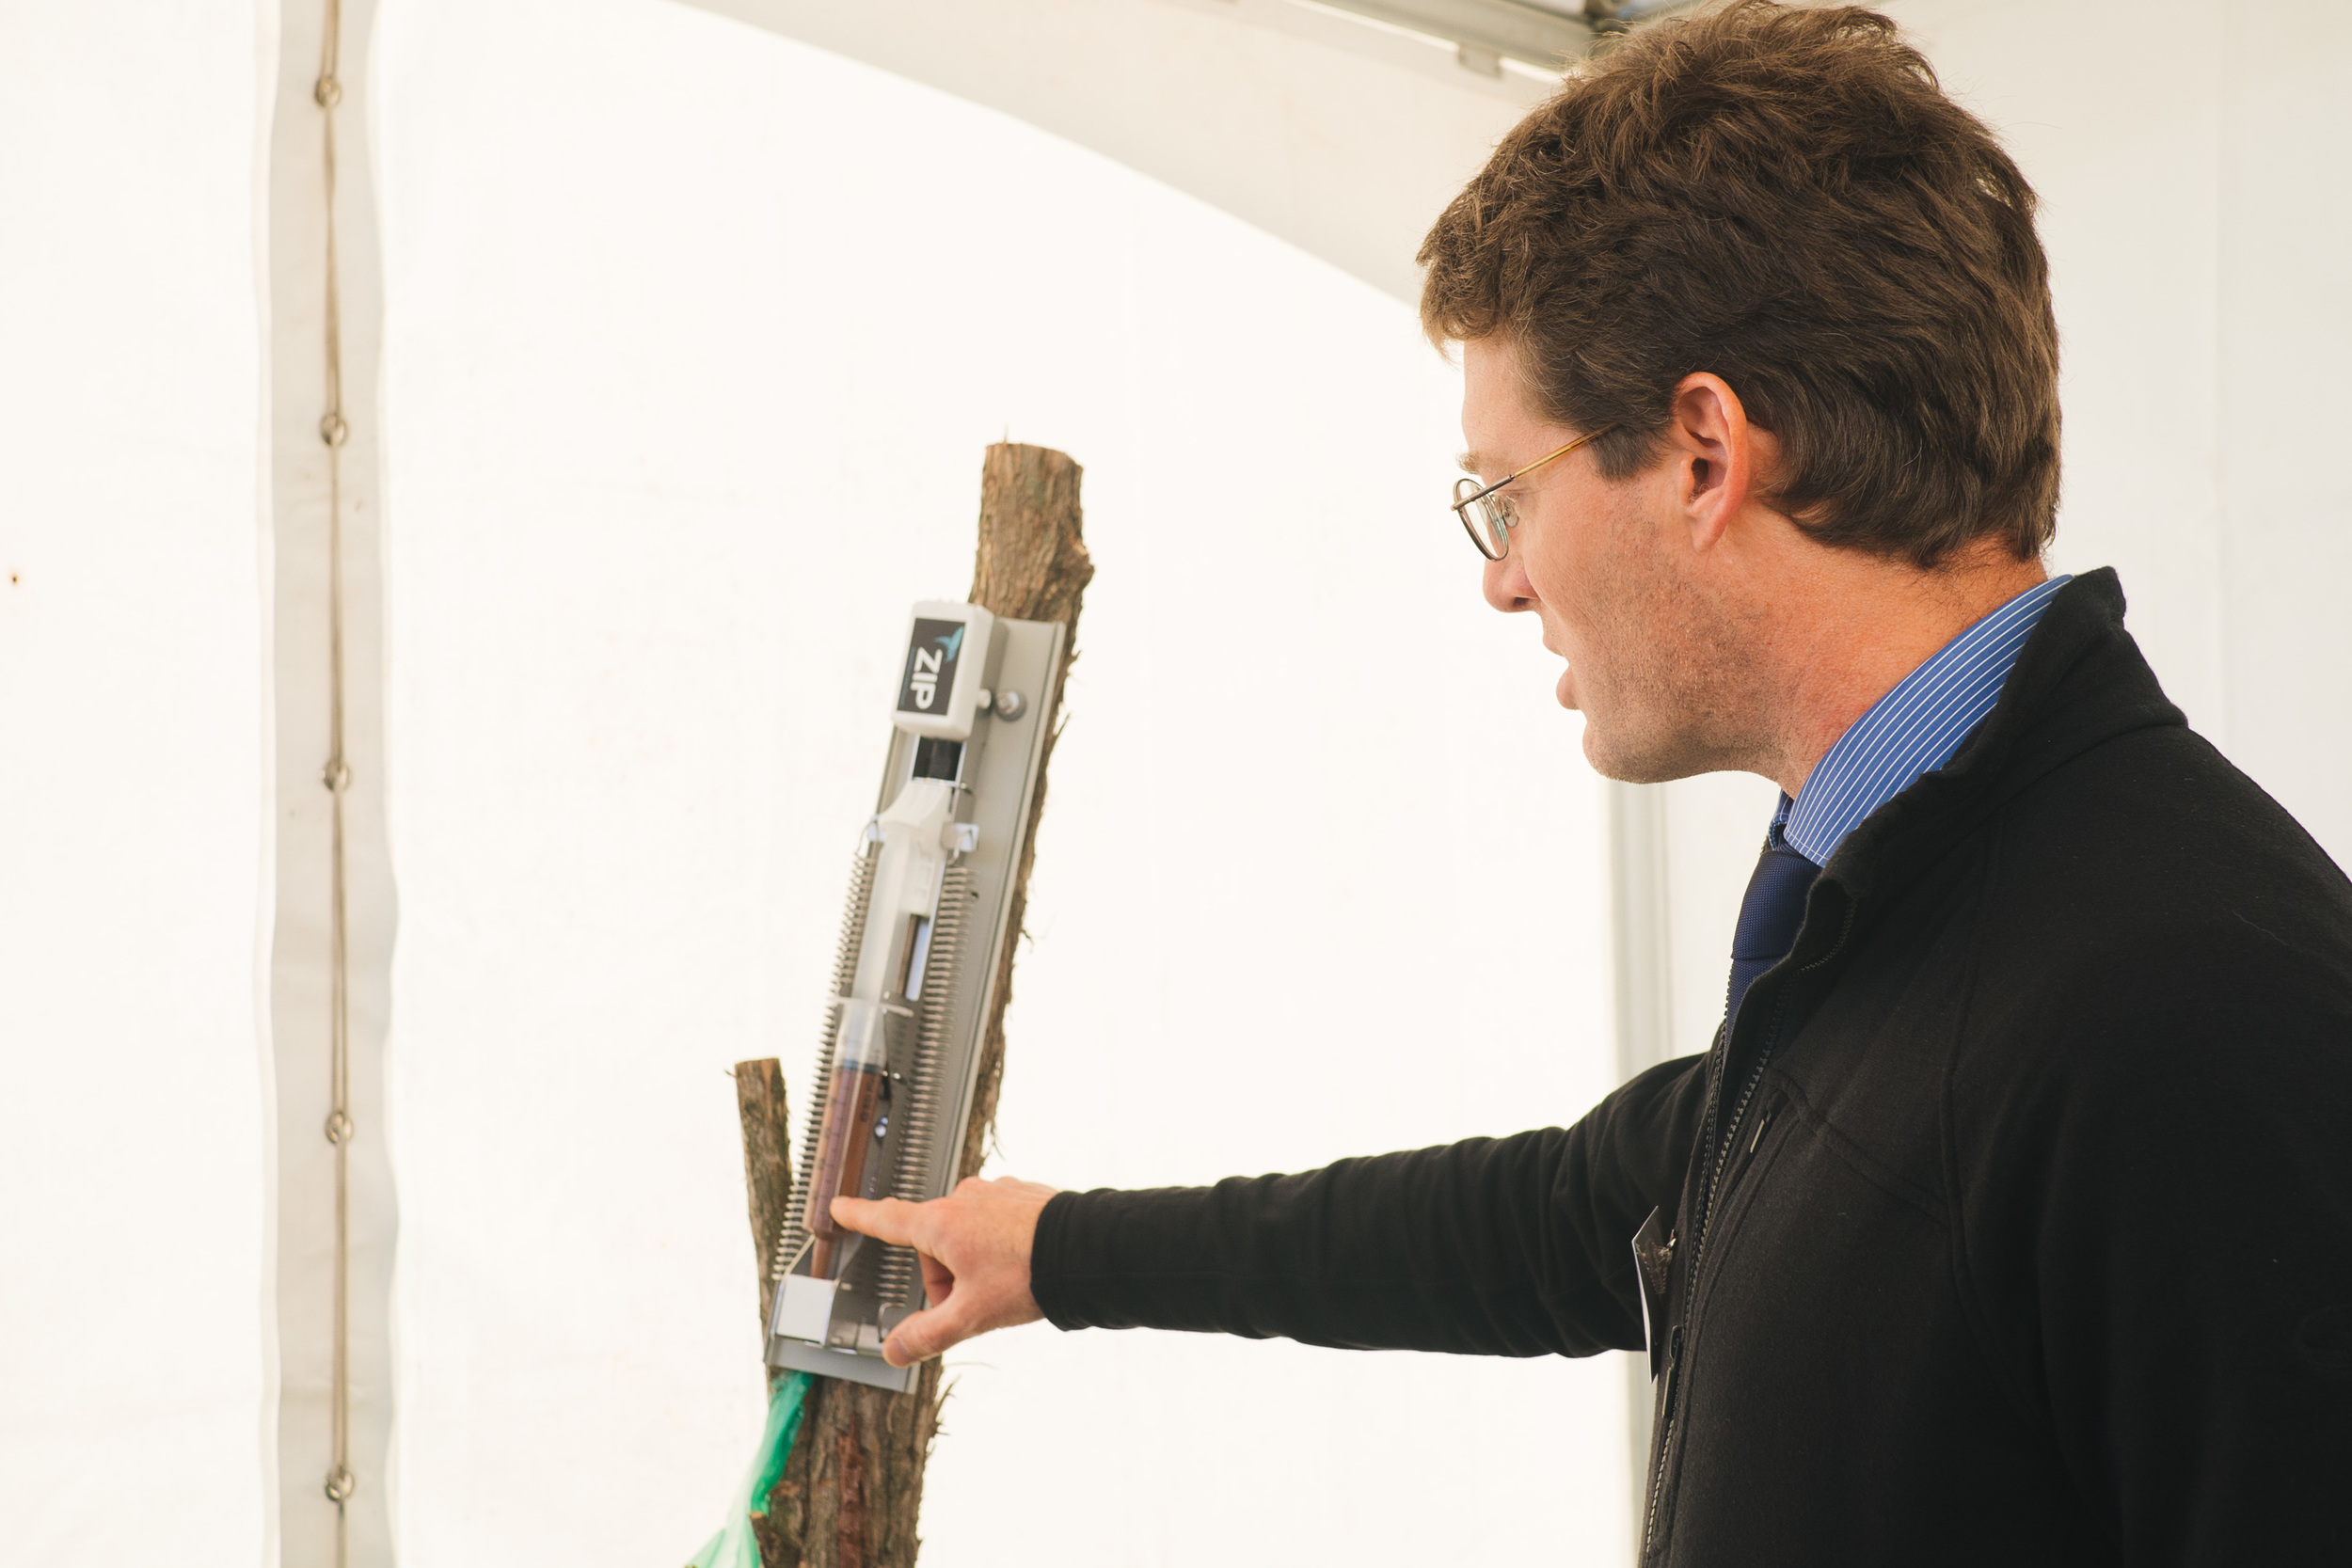 ZIP Principal Engineer John Wilks demonstrates the prototype automated lure dispenser ZIP is developing along with InFact Design.